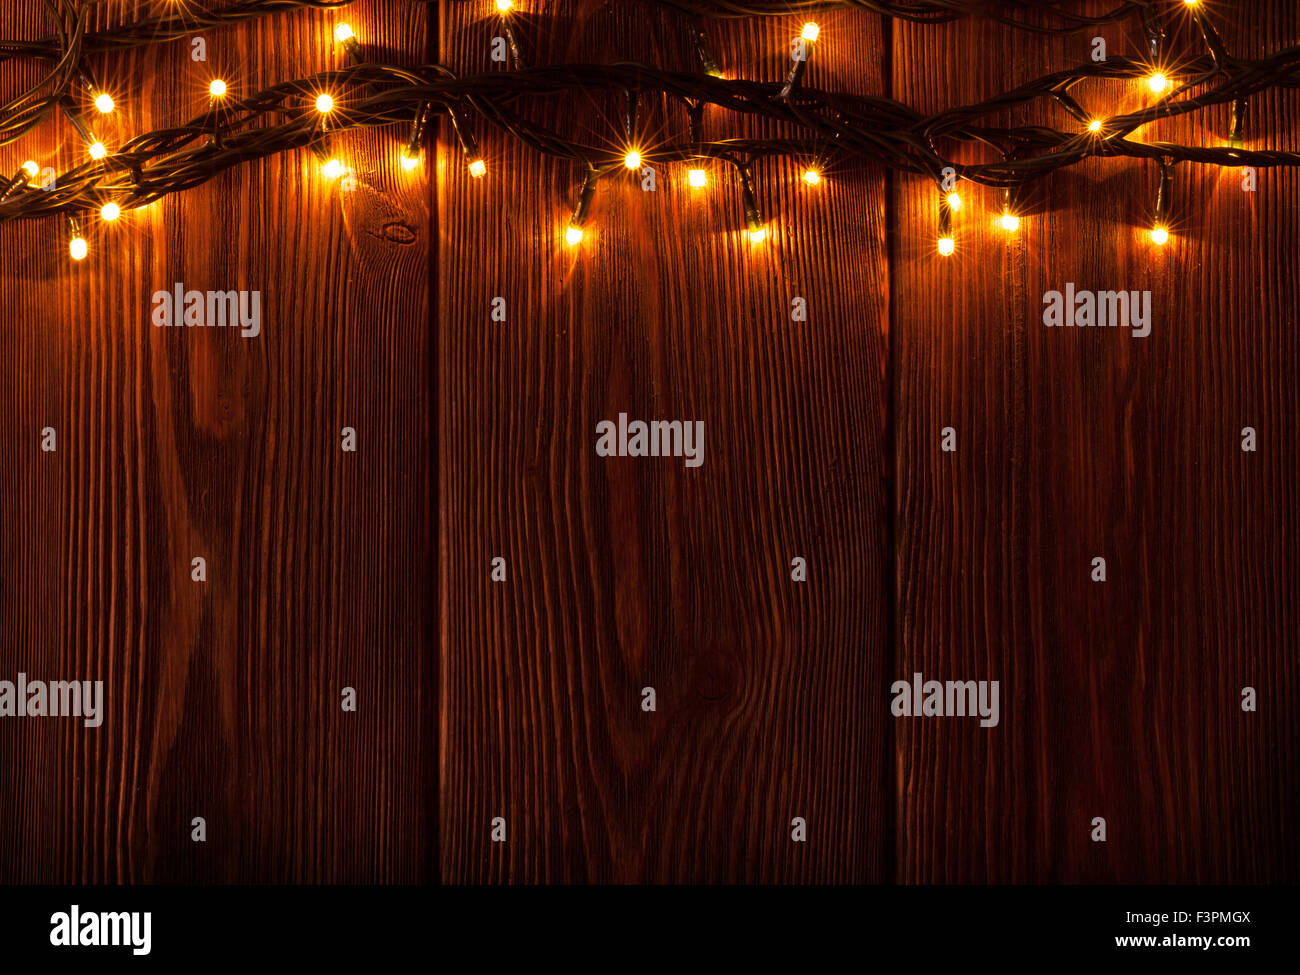 Christmas Lights On Wooden Background View With Copy Space